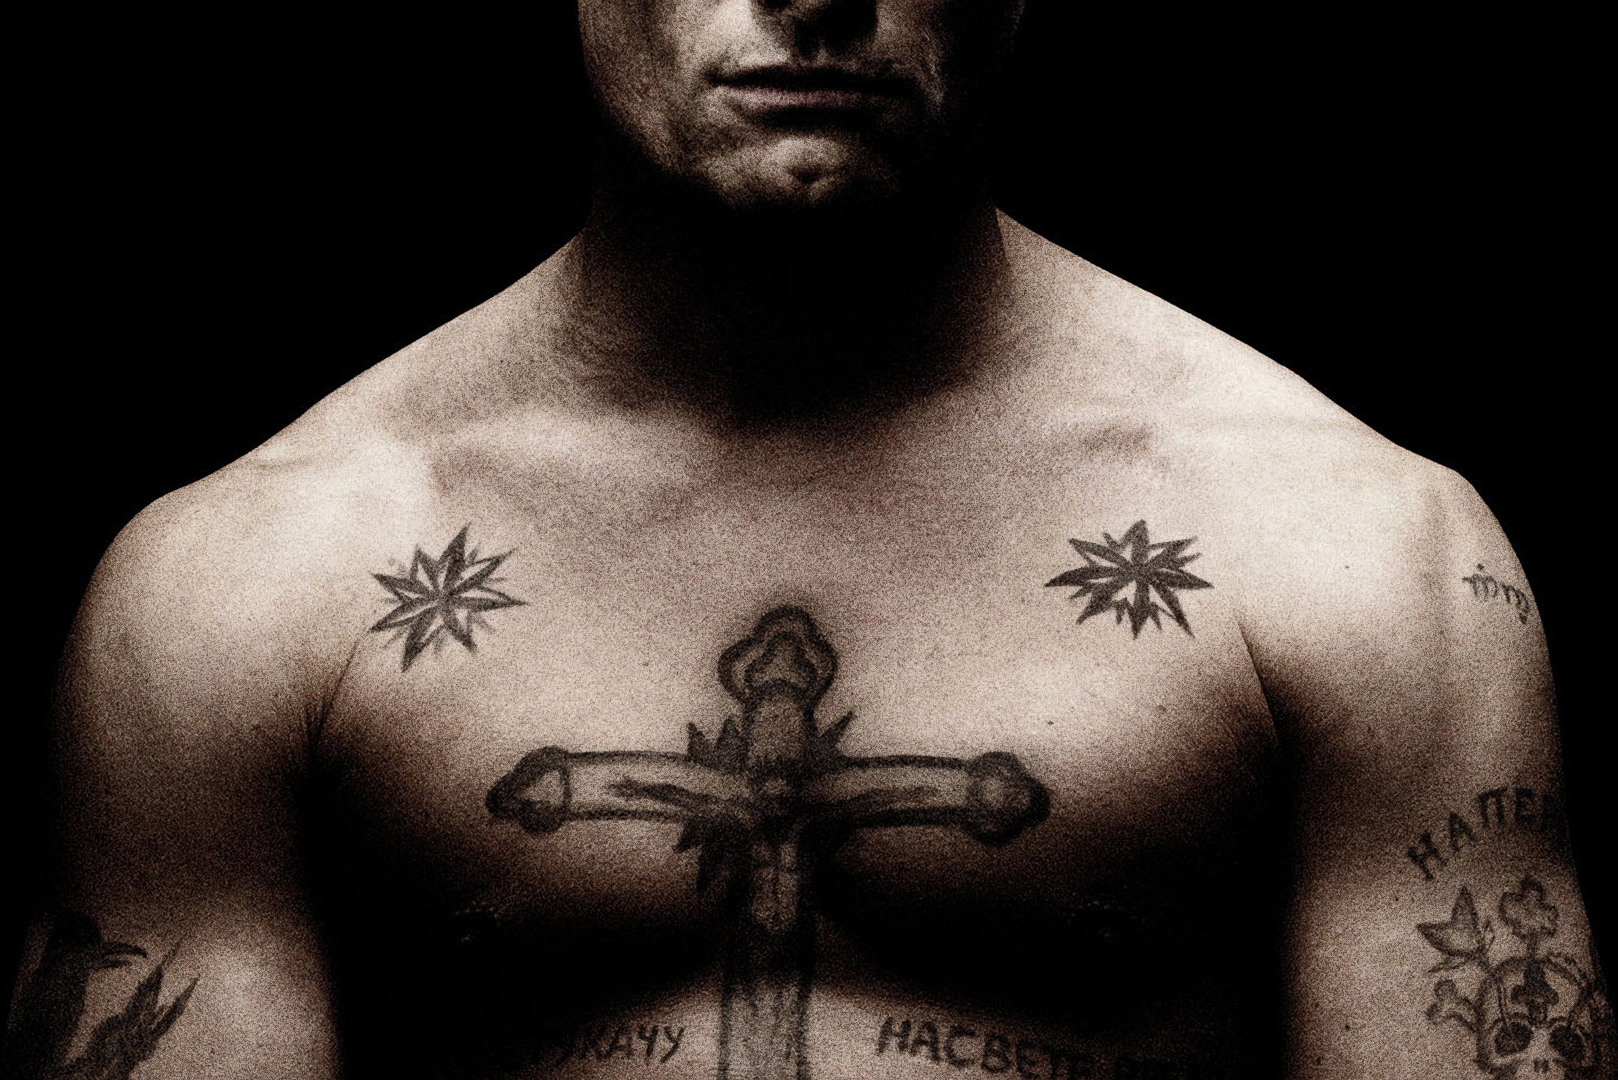 cross tattoo on his chest in men 20150417 1321308916